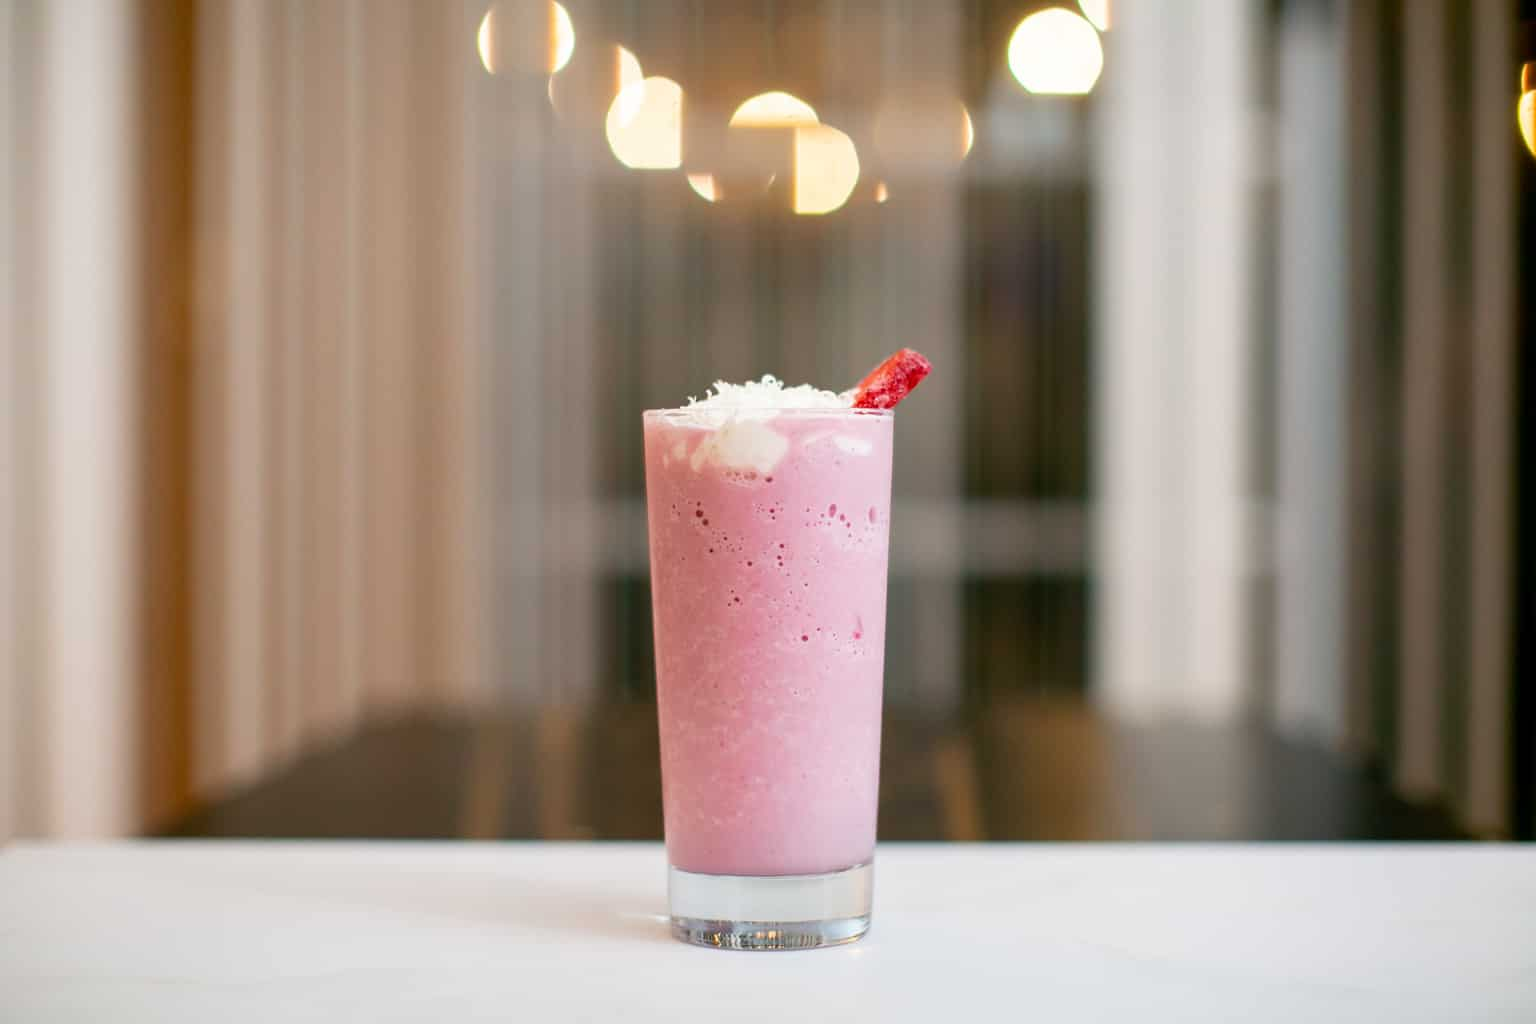 Strawberry milkshake topped with whipped cream